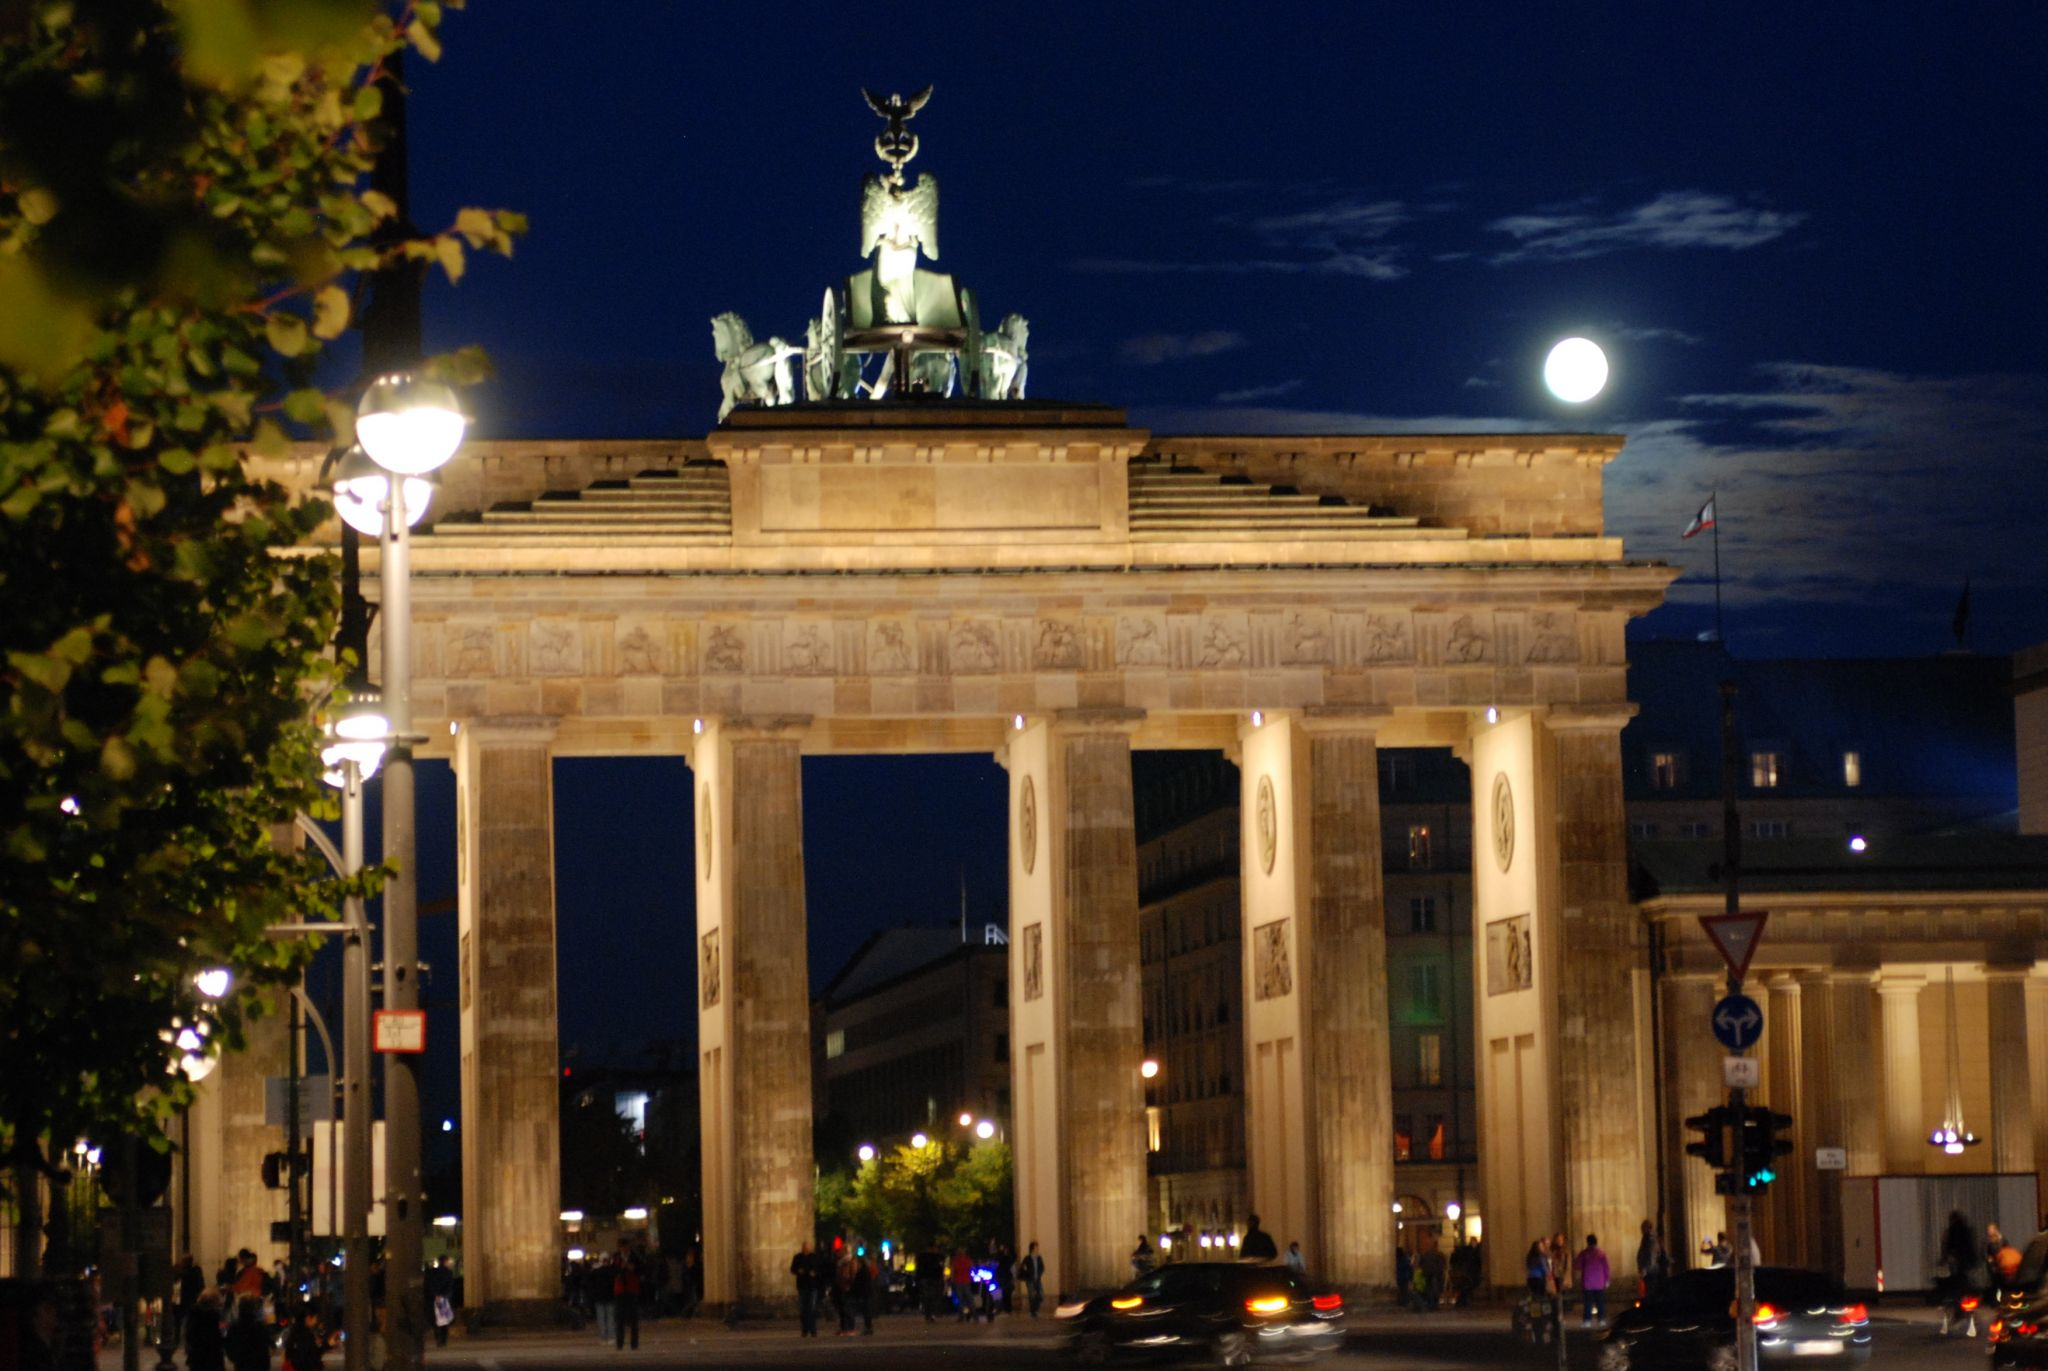 View of Brandenburg Gate from West, Germany